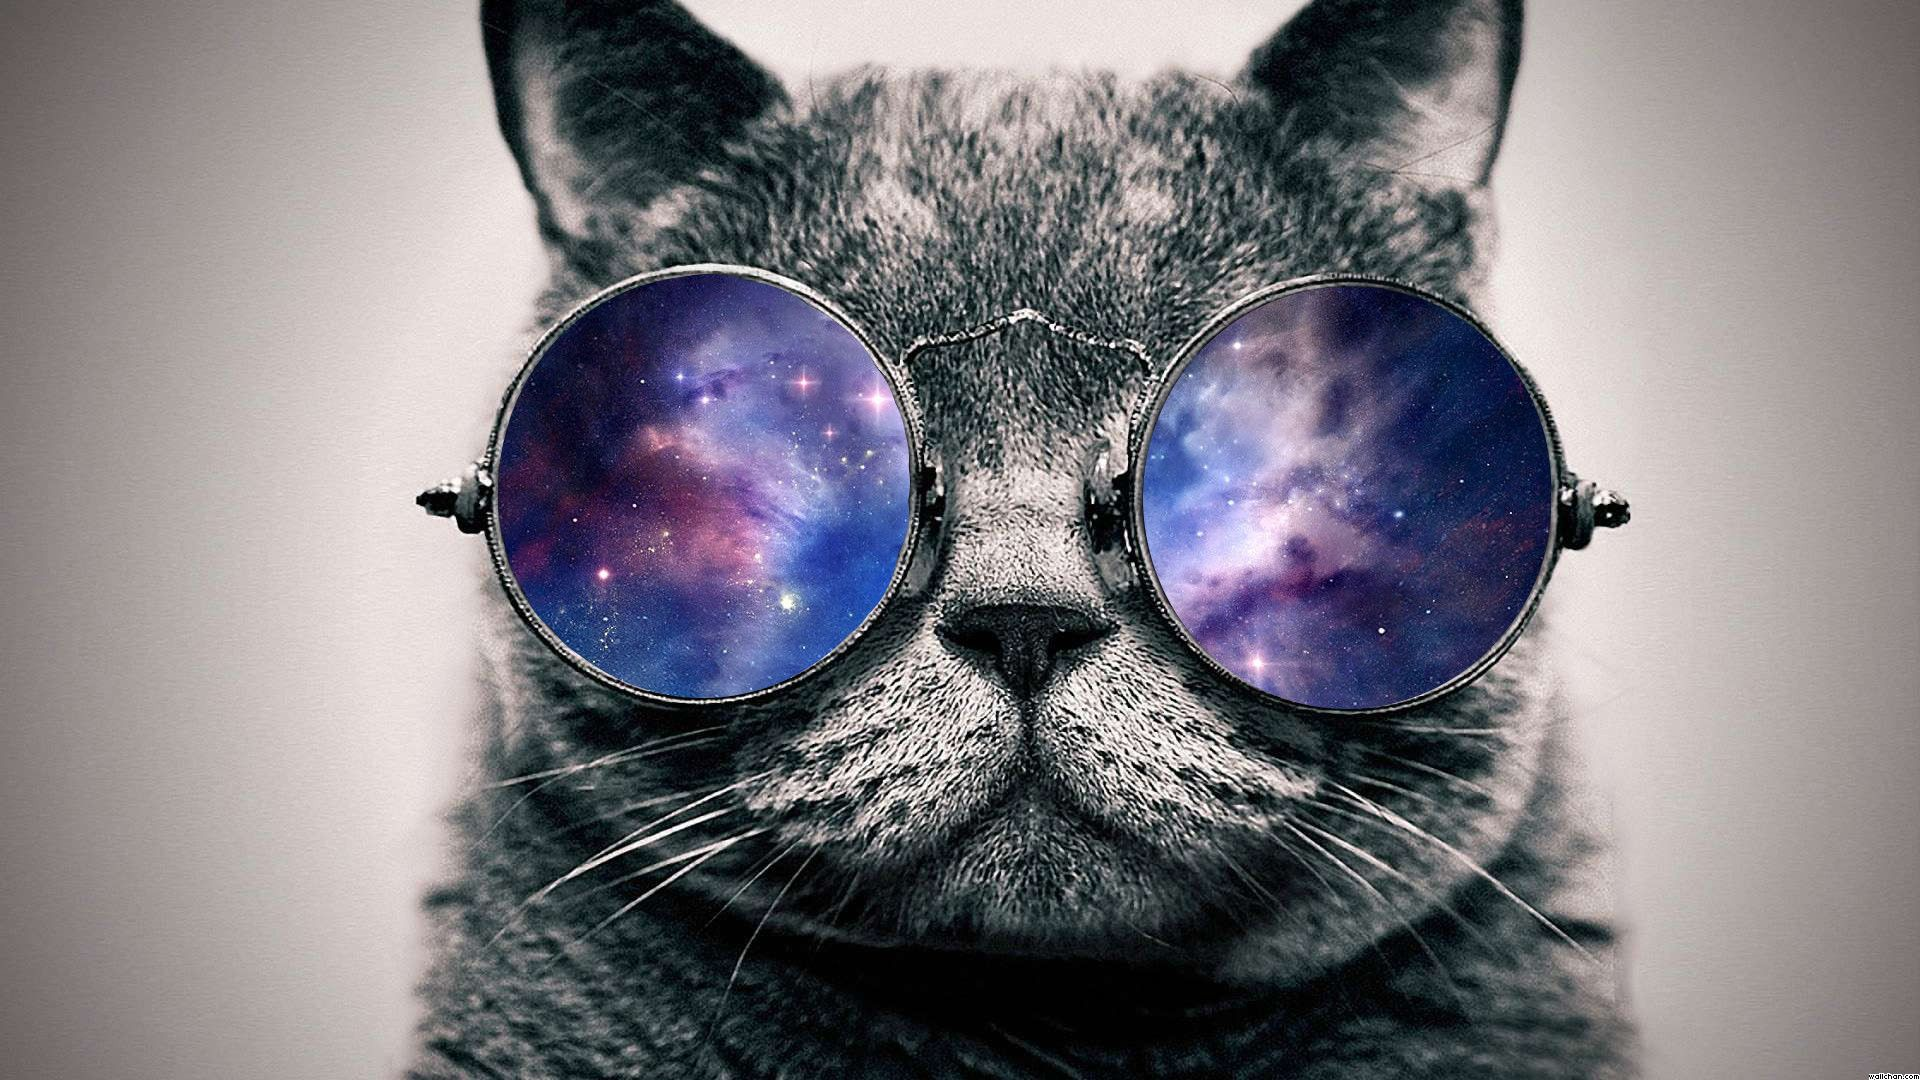 Cat With Sunglasses Wallpapers Top Free Cat With Sunglasses Backgrounds Wallpaperaccess